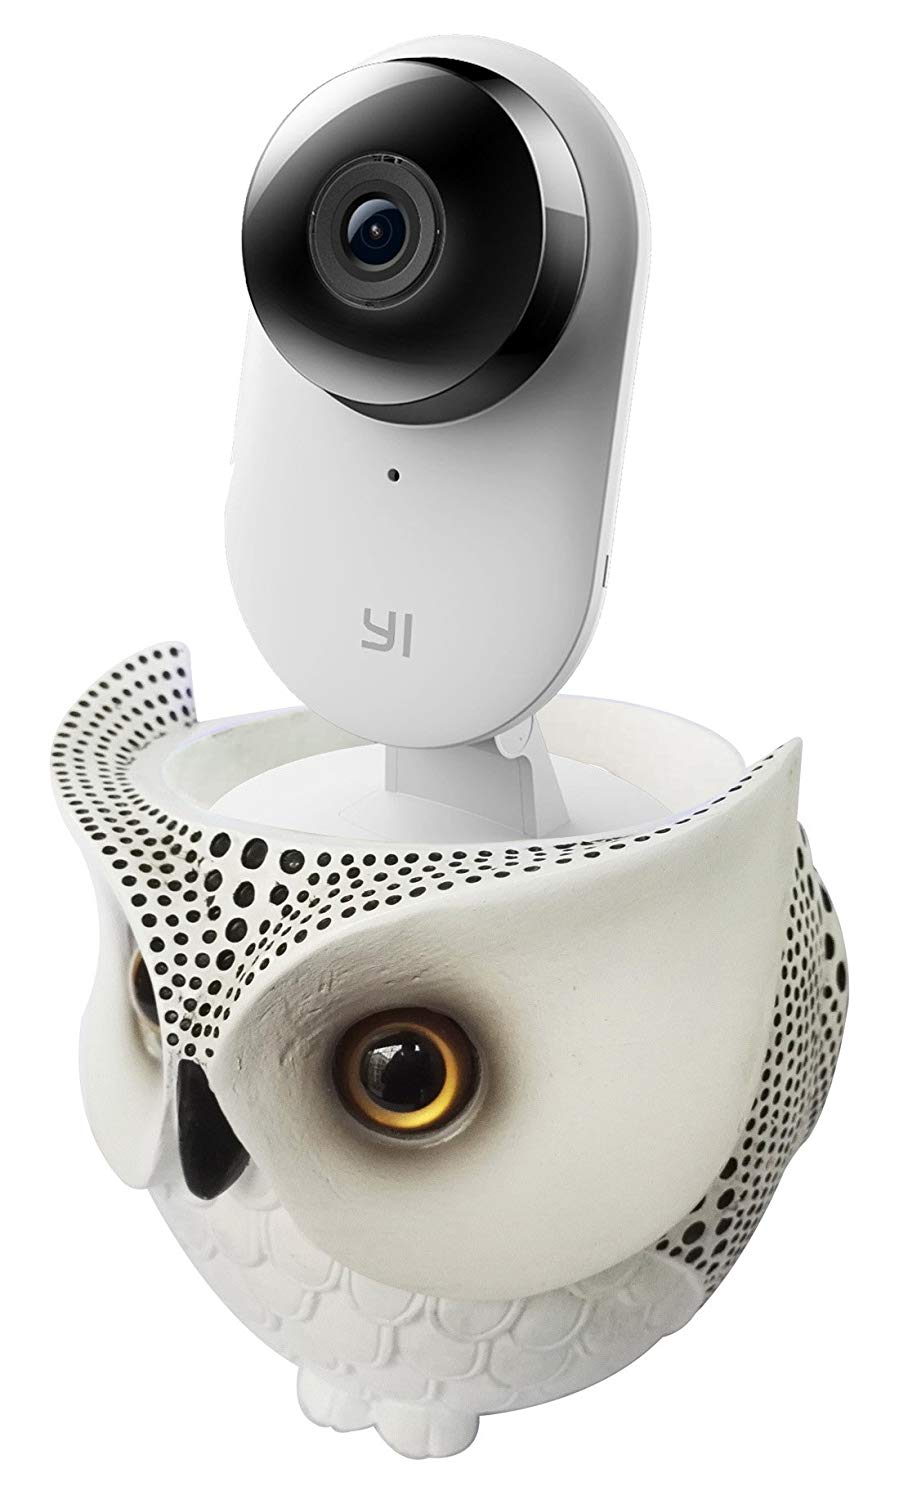 FitSand Owl Statue Crafted Stand Station Guard Holder for YI Home Camera 2 1080p Wireless IP Security Surveillance System HDR